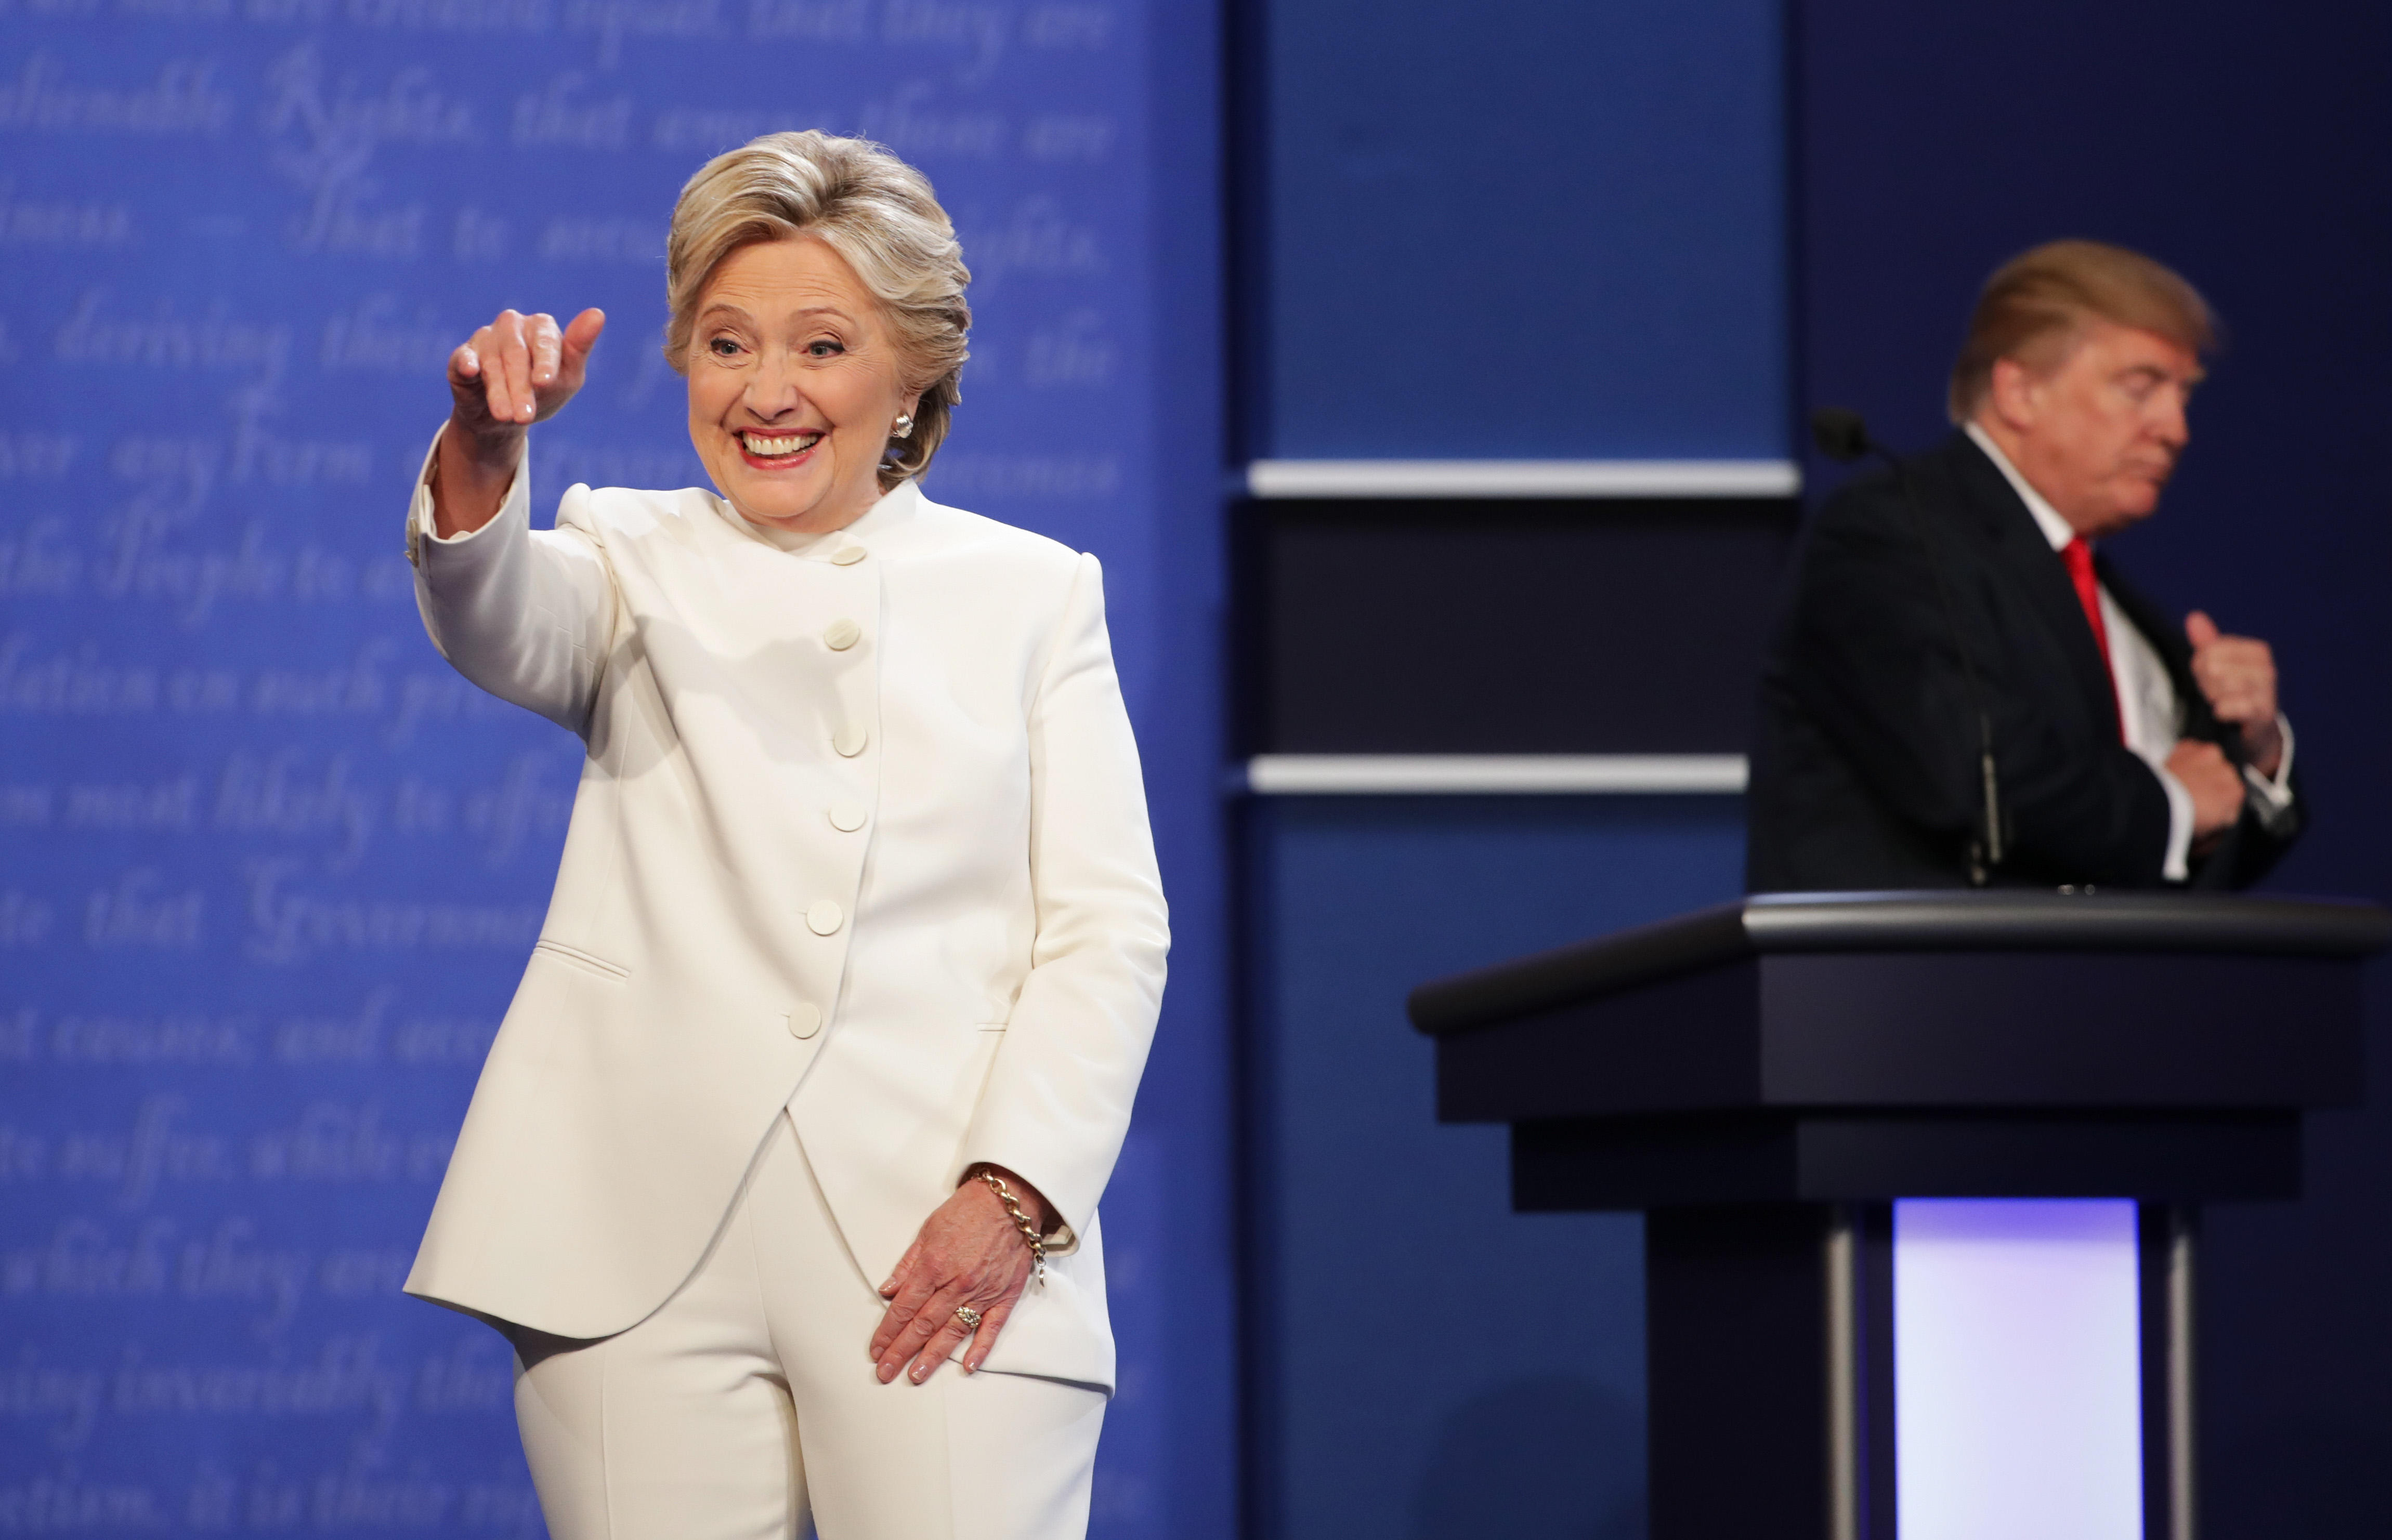 Hillary Clinton Wears White Pantsuit To Debate Internet Goes Crazy For It Cbs News